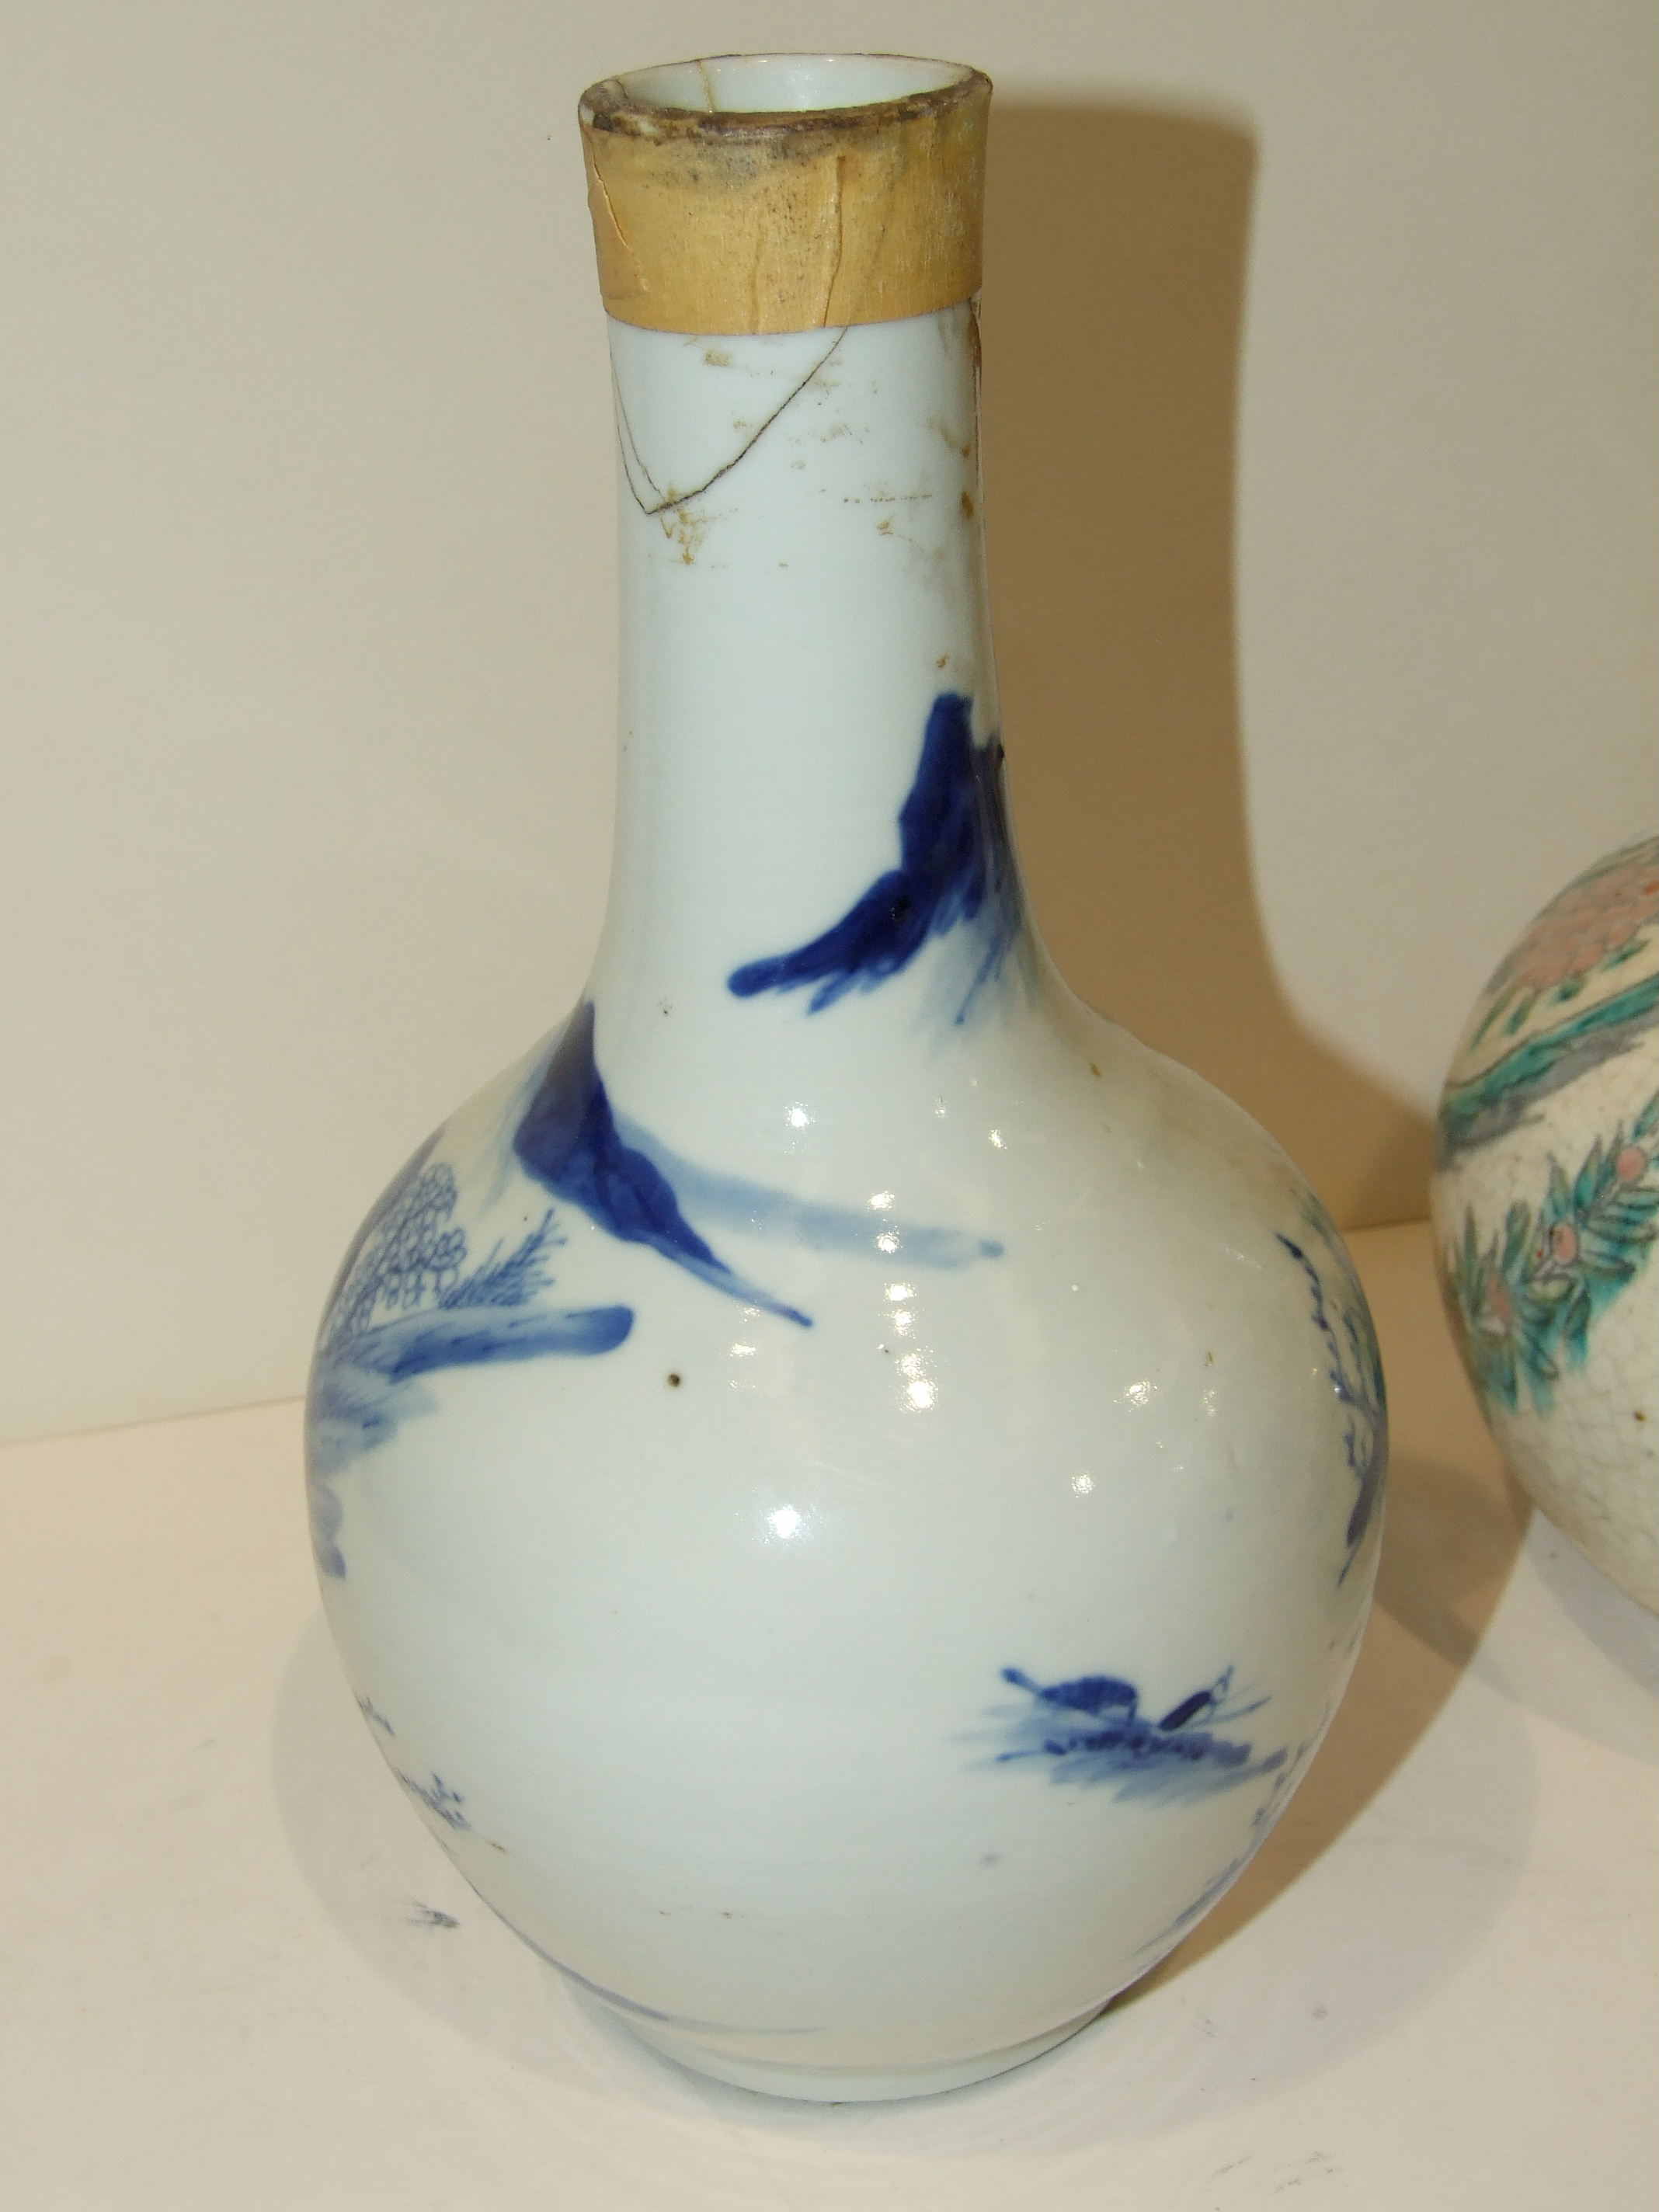 Lot 145 - A 19th century Chinese blue and white bottle vase, (damages), 24cm and another, both converted to